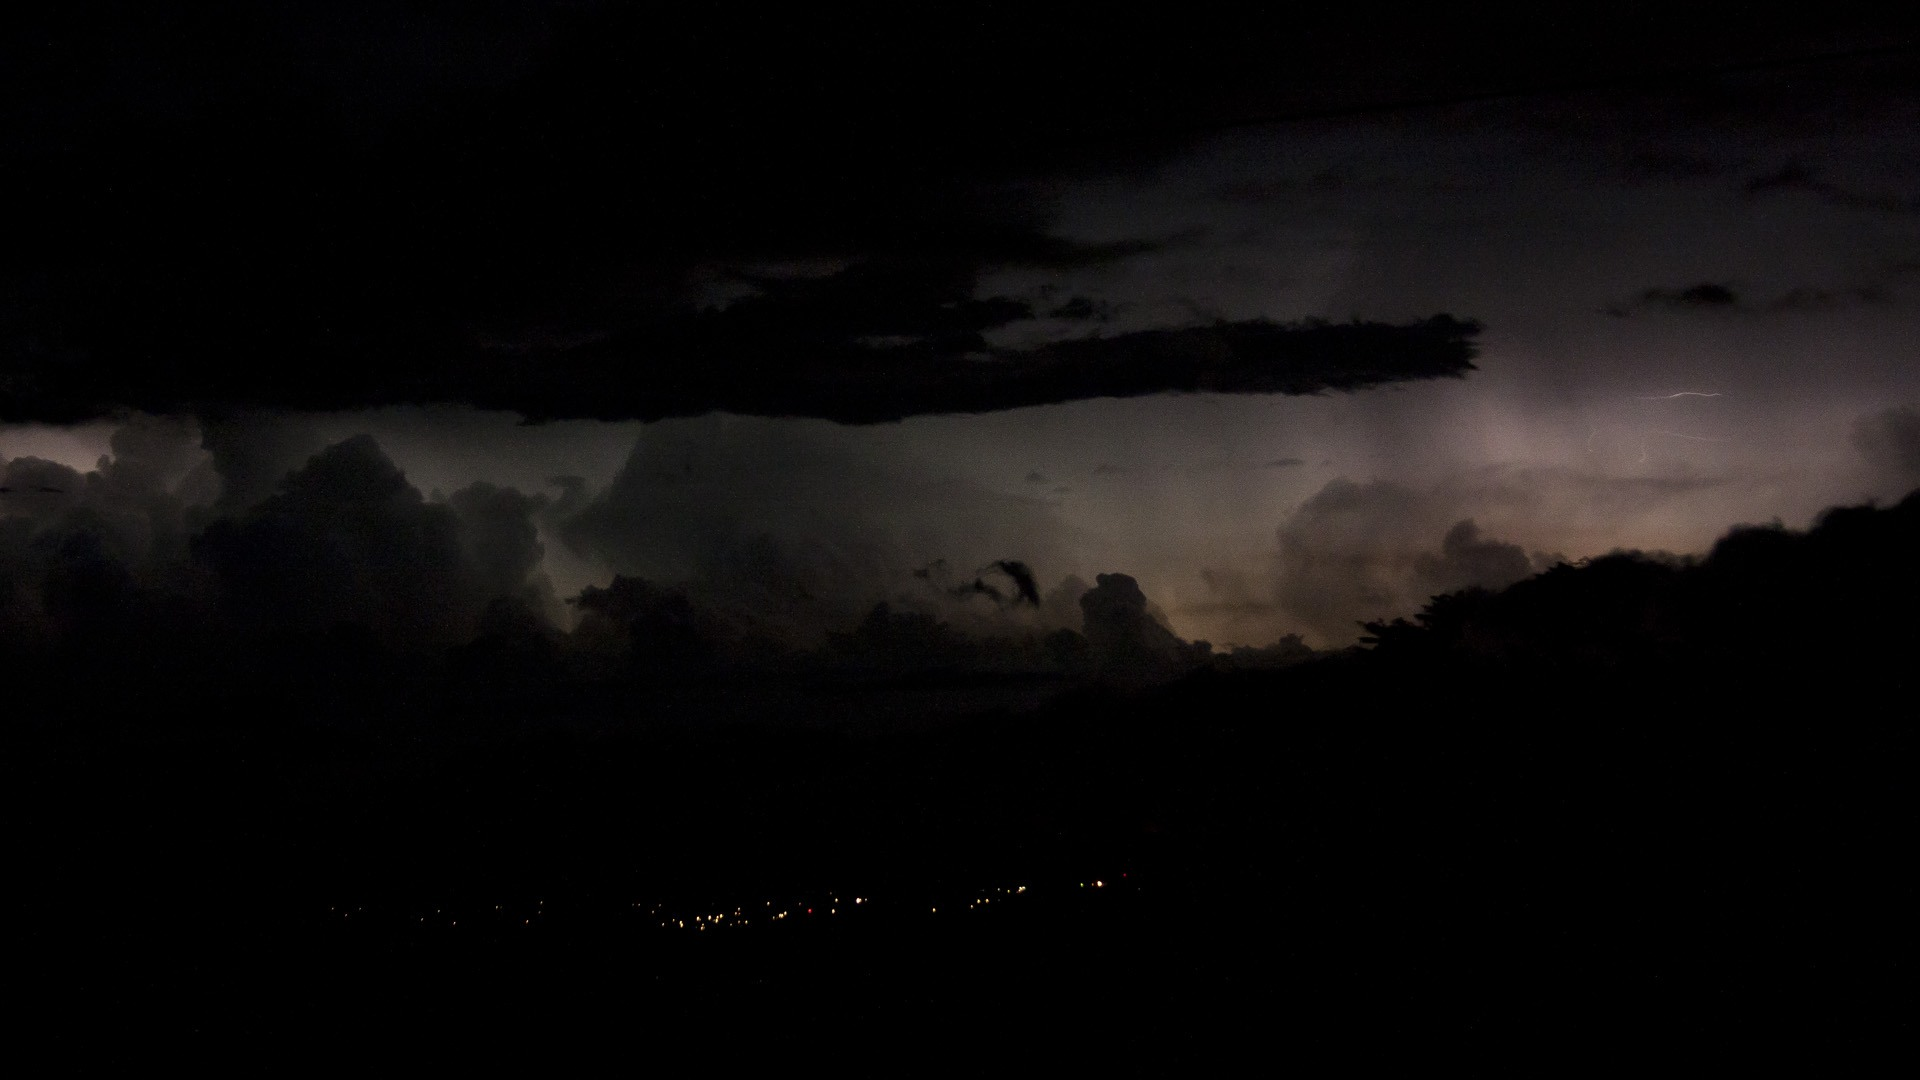 Distant Thunderstorm Wallpaper 1920x1080